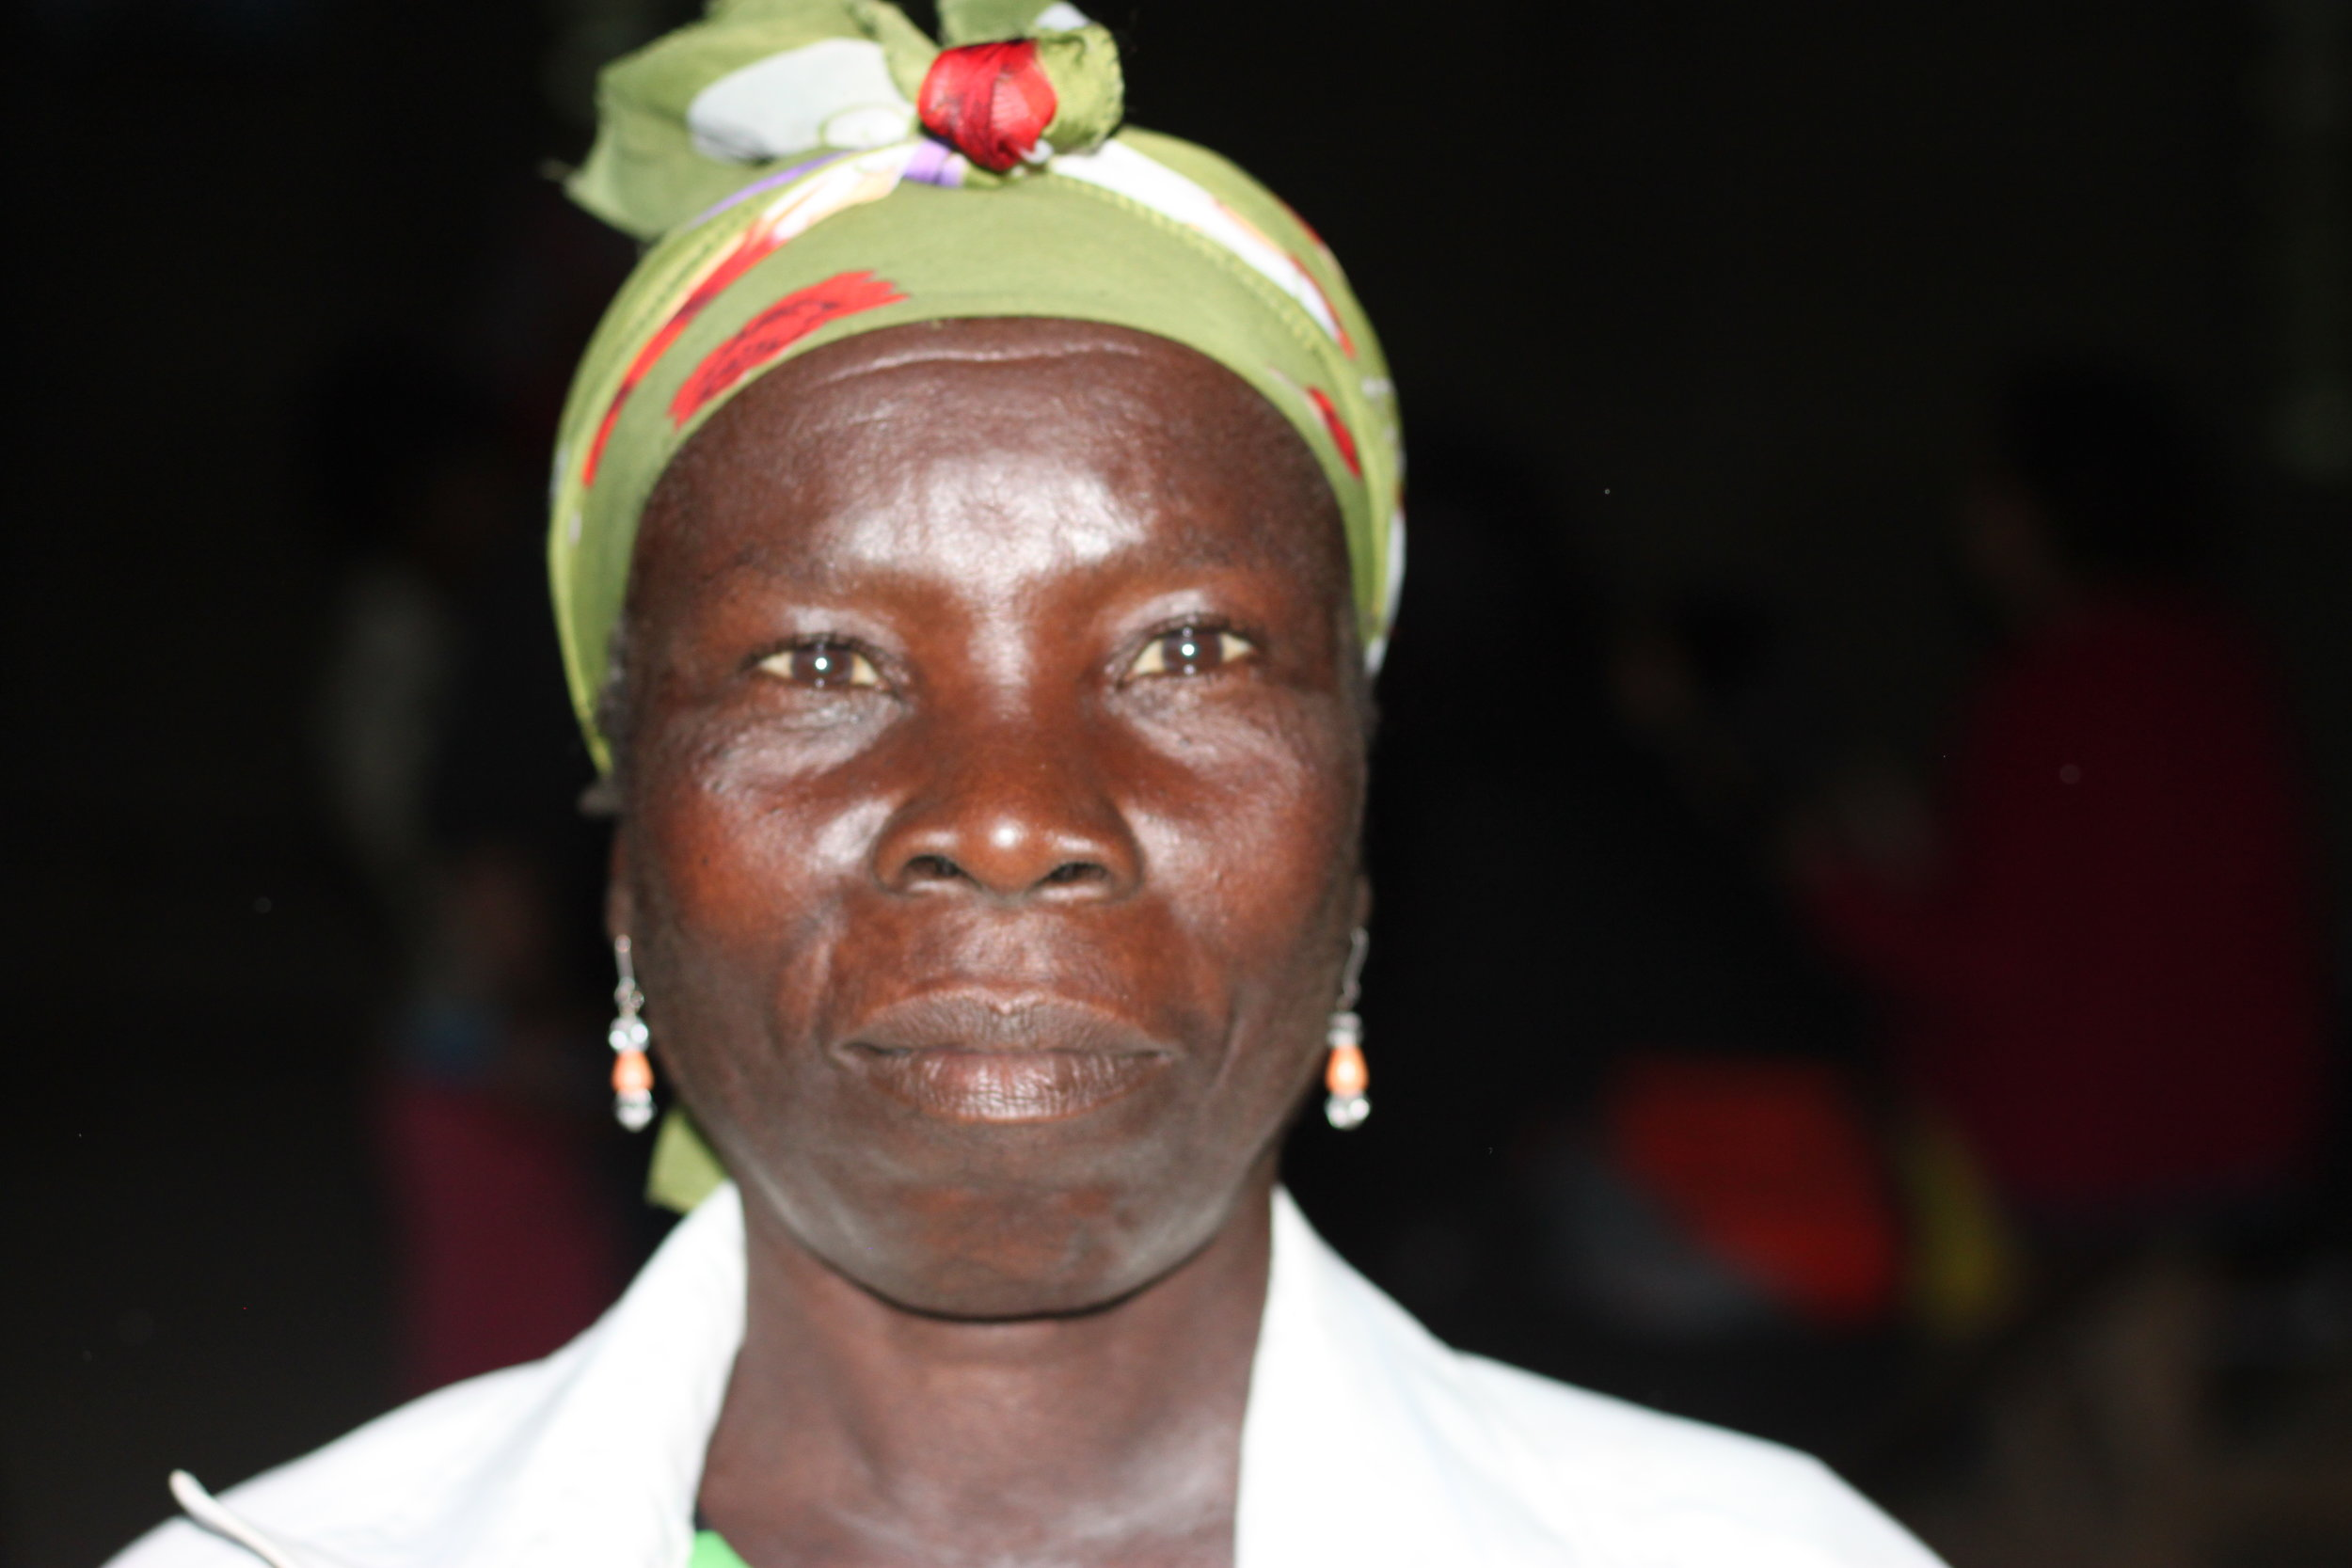 """Edwa Olain - 40 years old""""My husband has passed away so the entire family's responsibility is on me. But sometimes I cannot do the things that are supposed to be done by a man. I want to build a bigger house but I don't know how. When the church gave out cement and tin roofs, I didn't get any."""""""